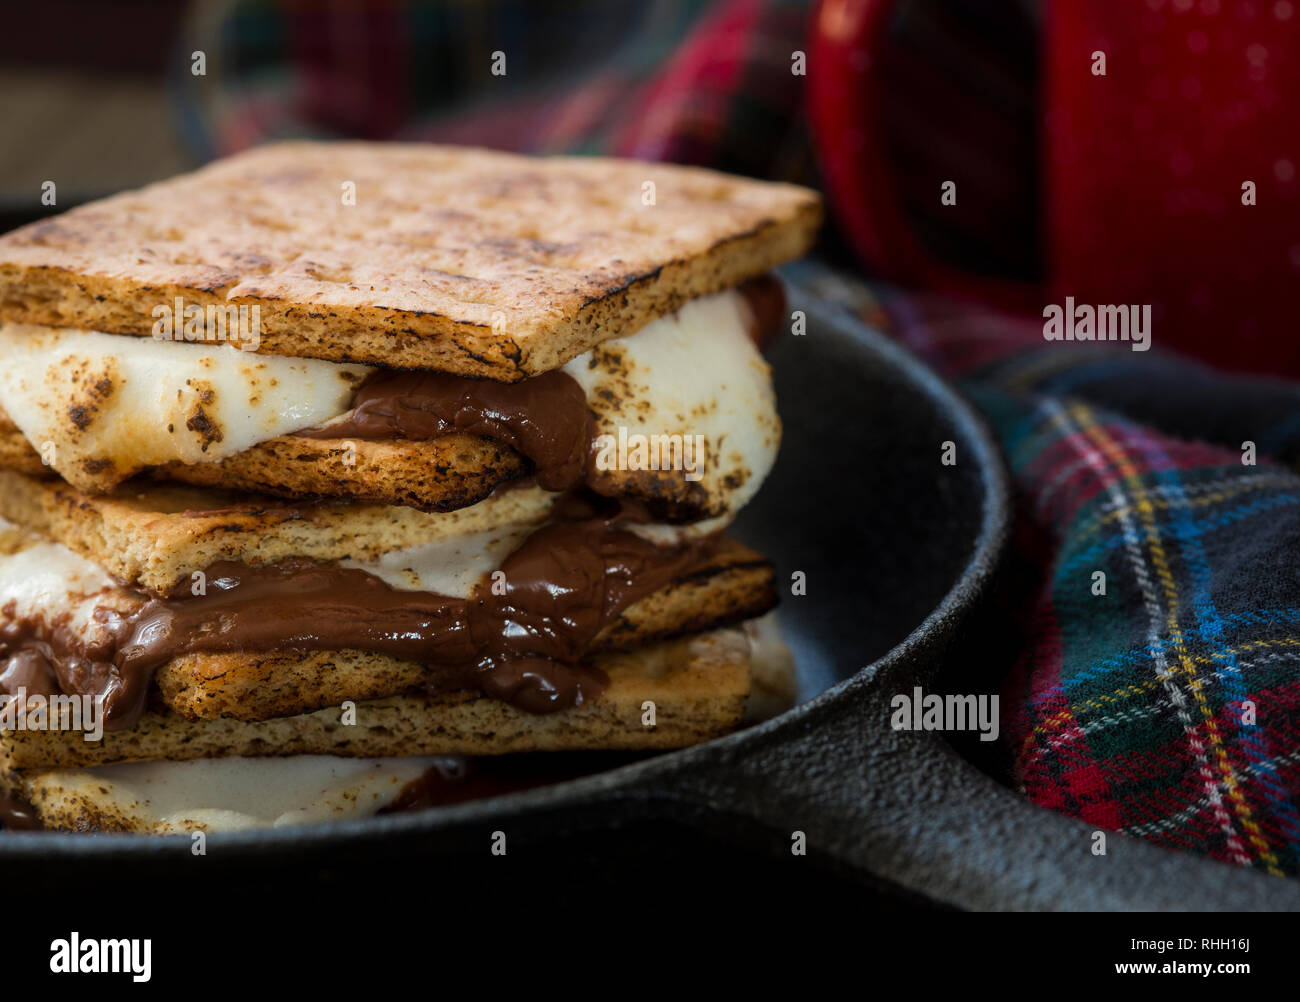 smores in cast iron skillet with plaid blanket and enamelware mug - Stock Image